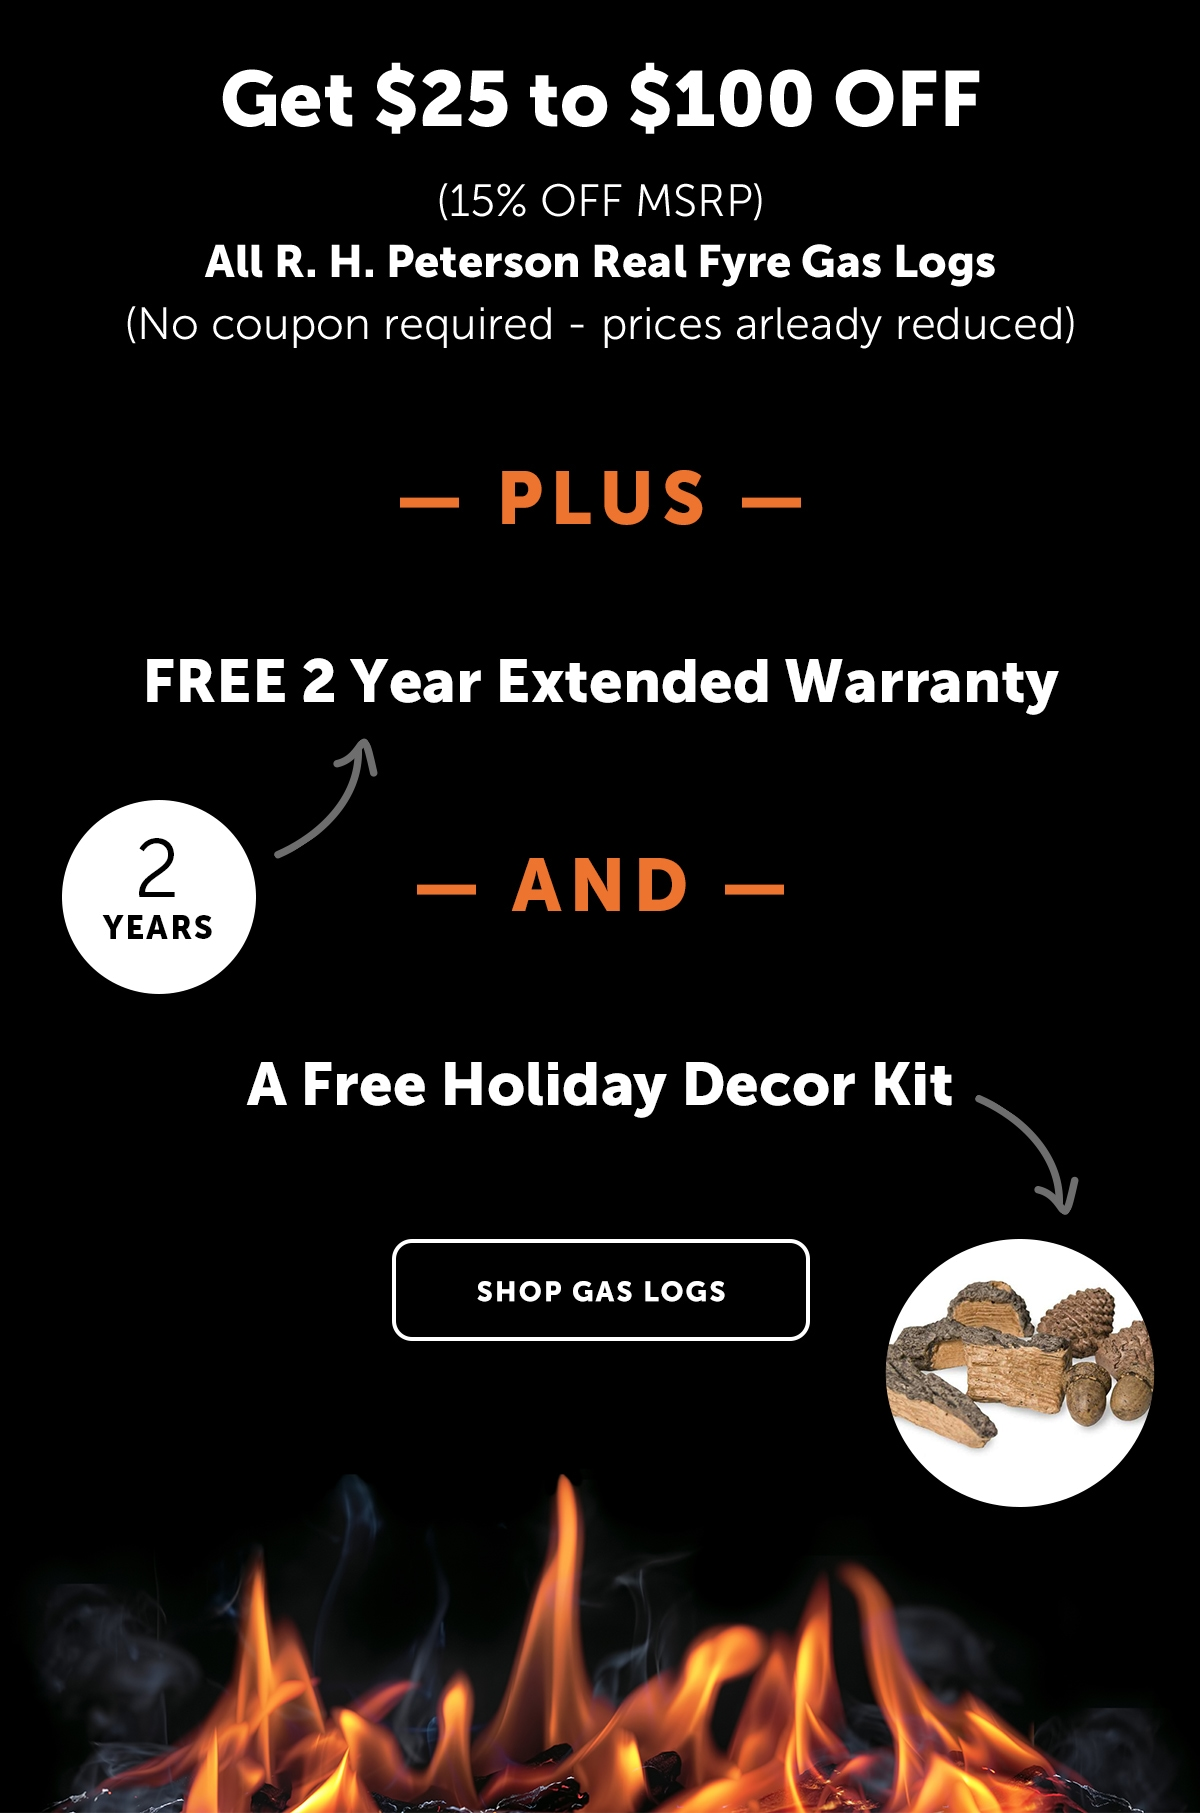 Get $25 to $100 Off (15% Off MSRP) All R.H.Peterson Real Fyre Gas Logs - No coupon required - prices already reduced - PLUS - FREE 2 Year Extended Warranty AND A Free Holiday Decor Kit   Shop Gas Logs